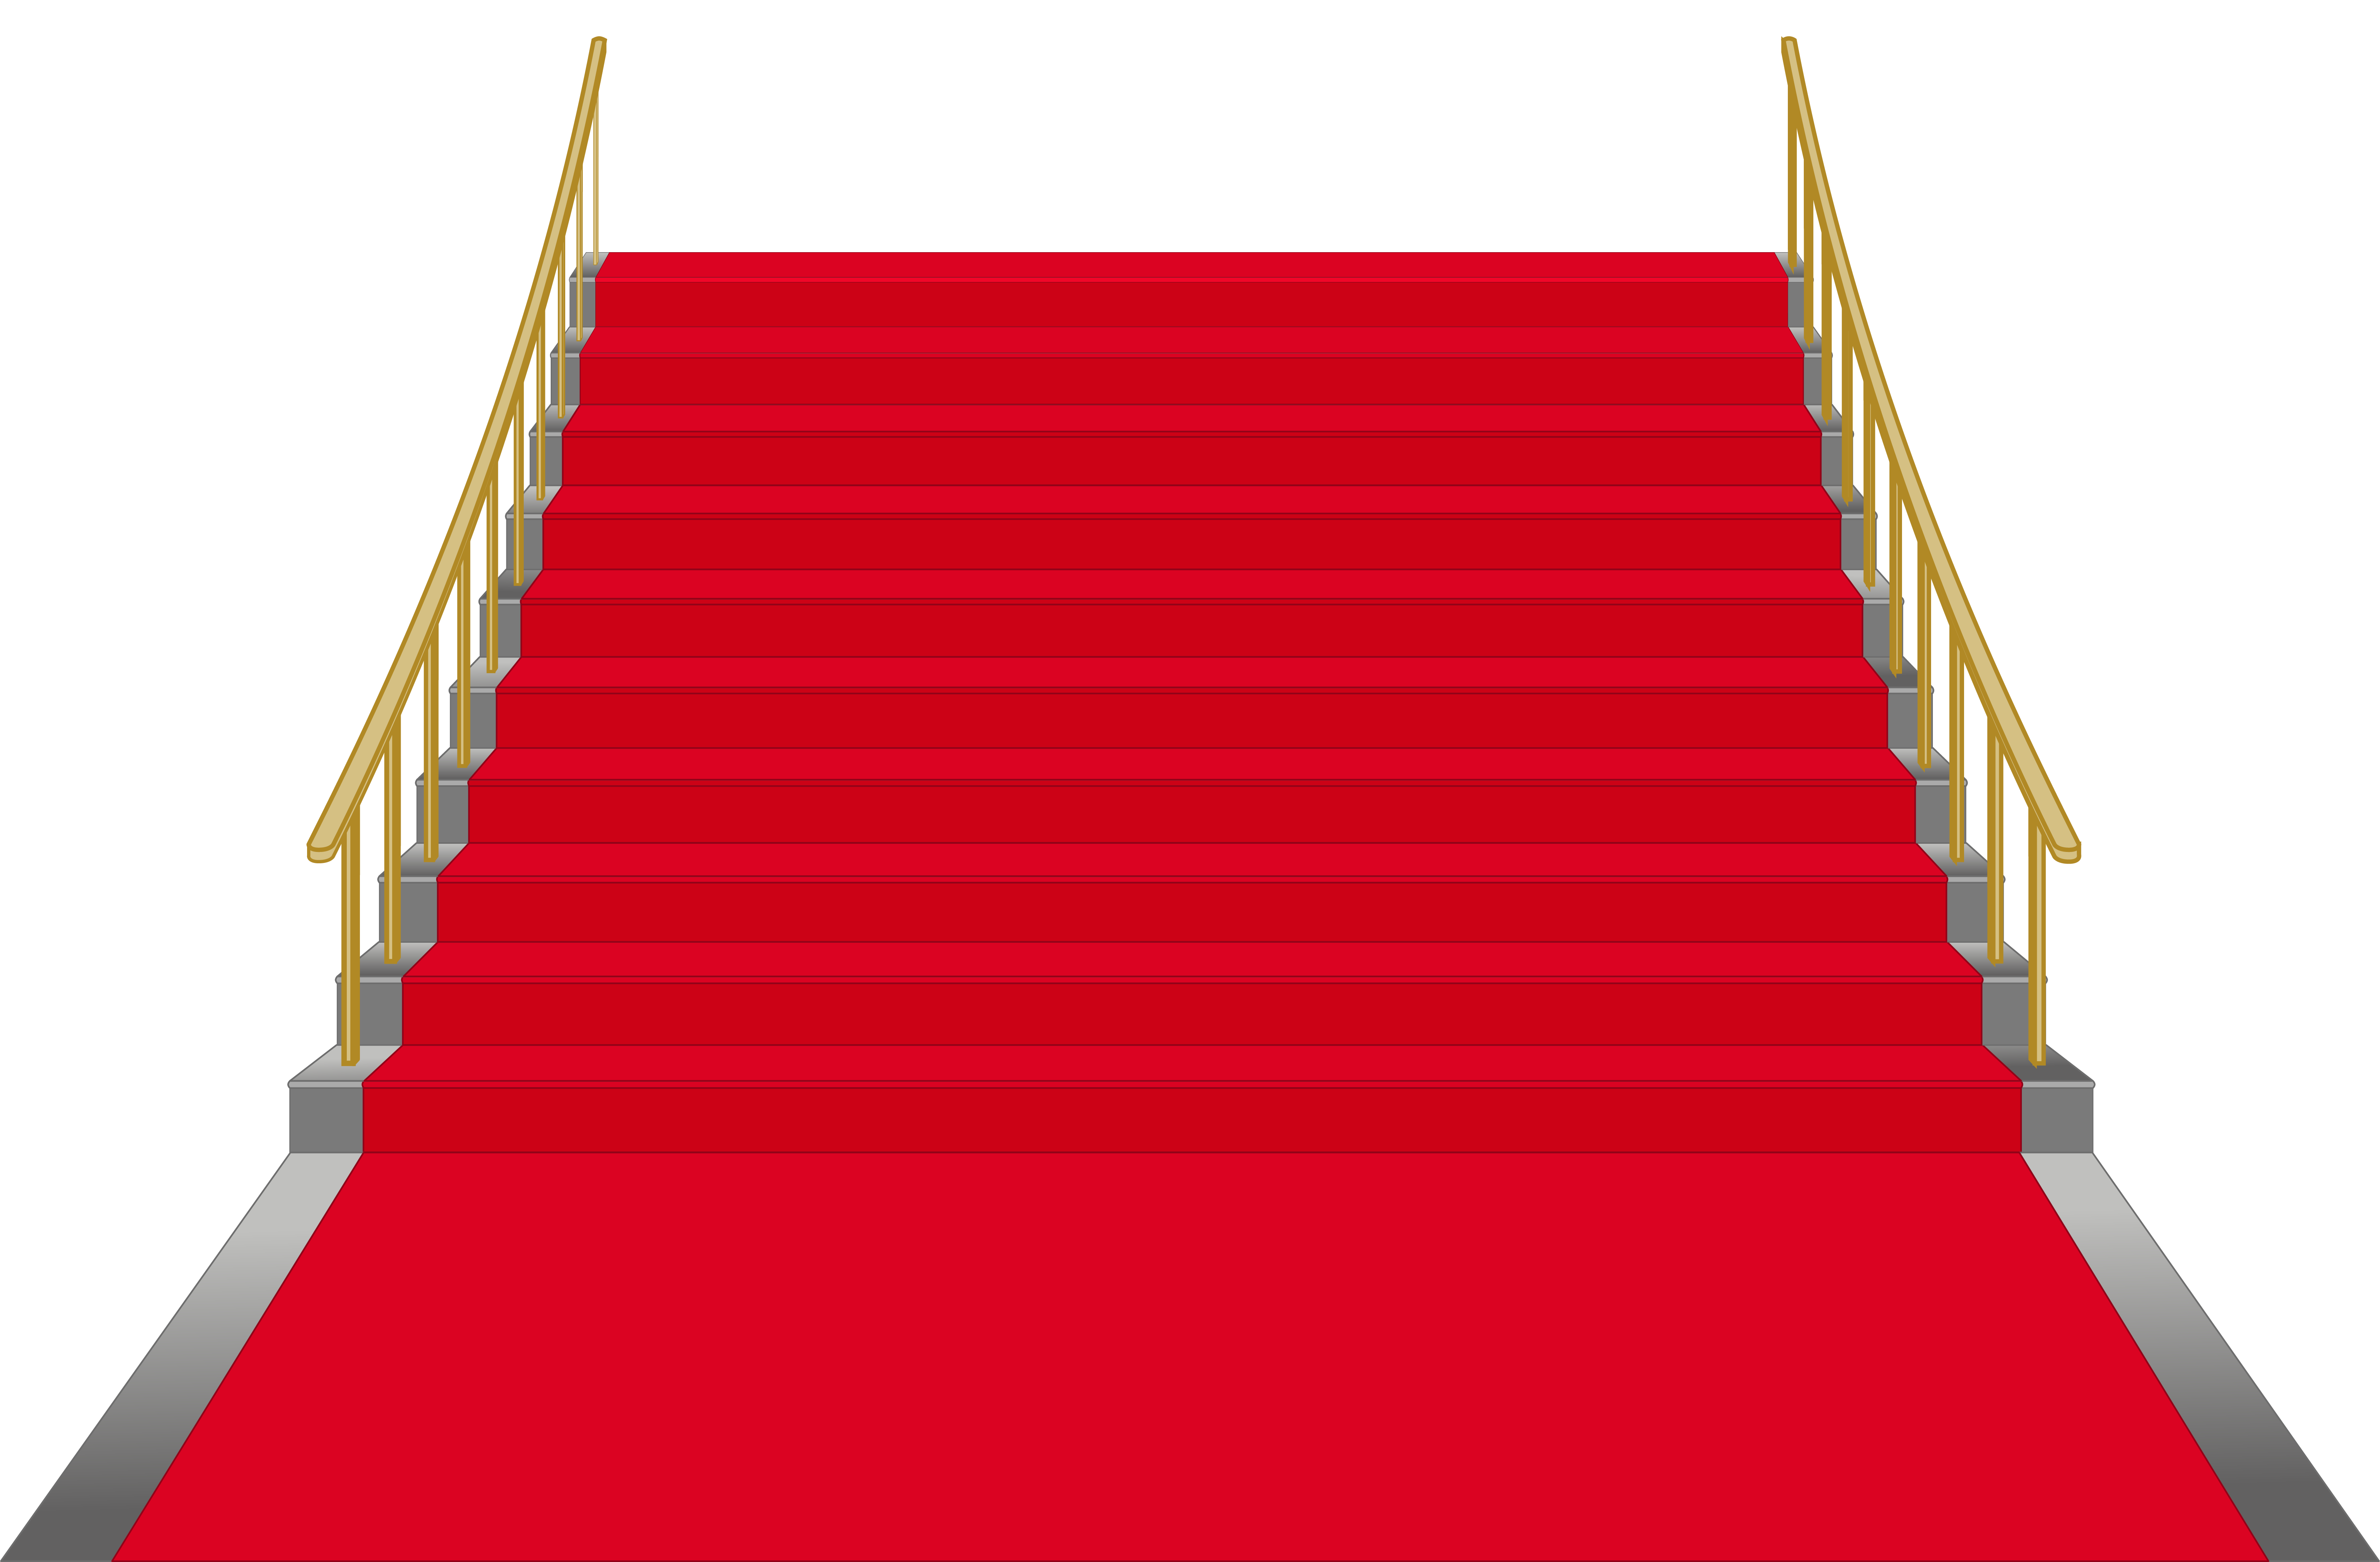 Free Stairs Cliparts, Download Free Clip Art, Free Clip Art on.